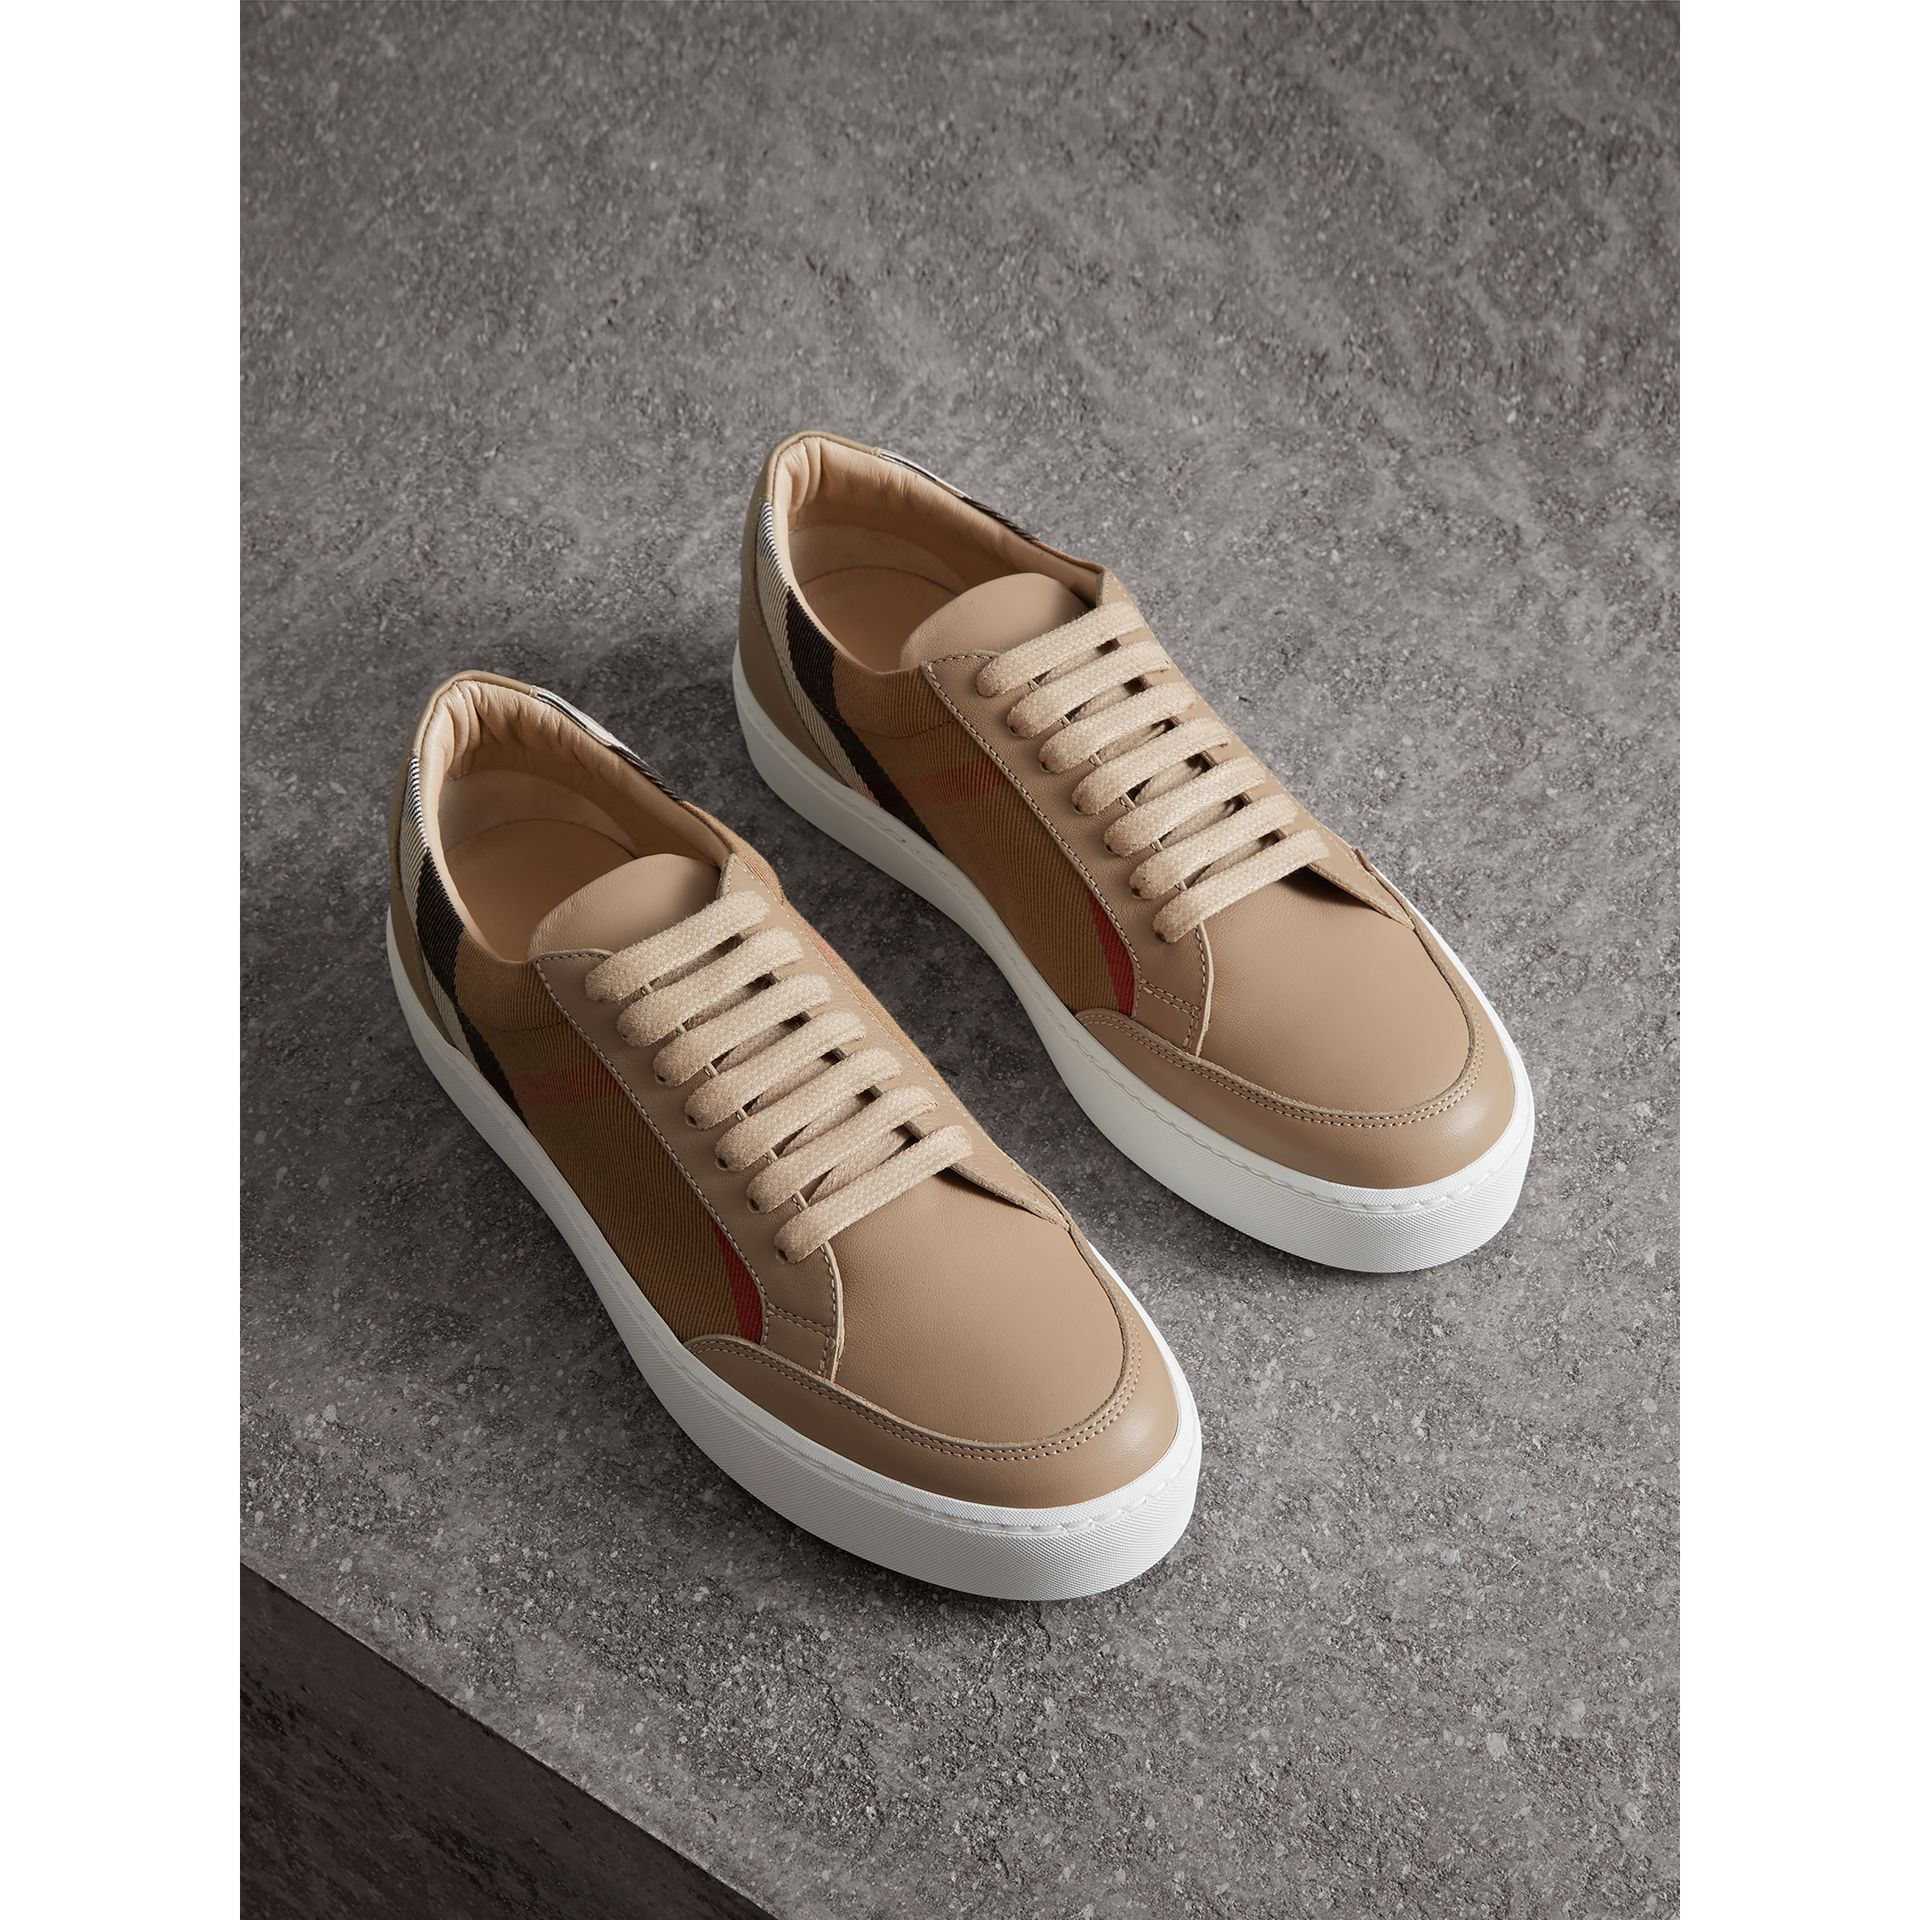 Sneakers en cuir avec détails check (House Check/nude) - Femme | Burberry - photo de la galerie 0